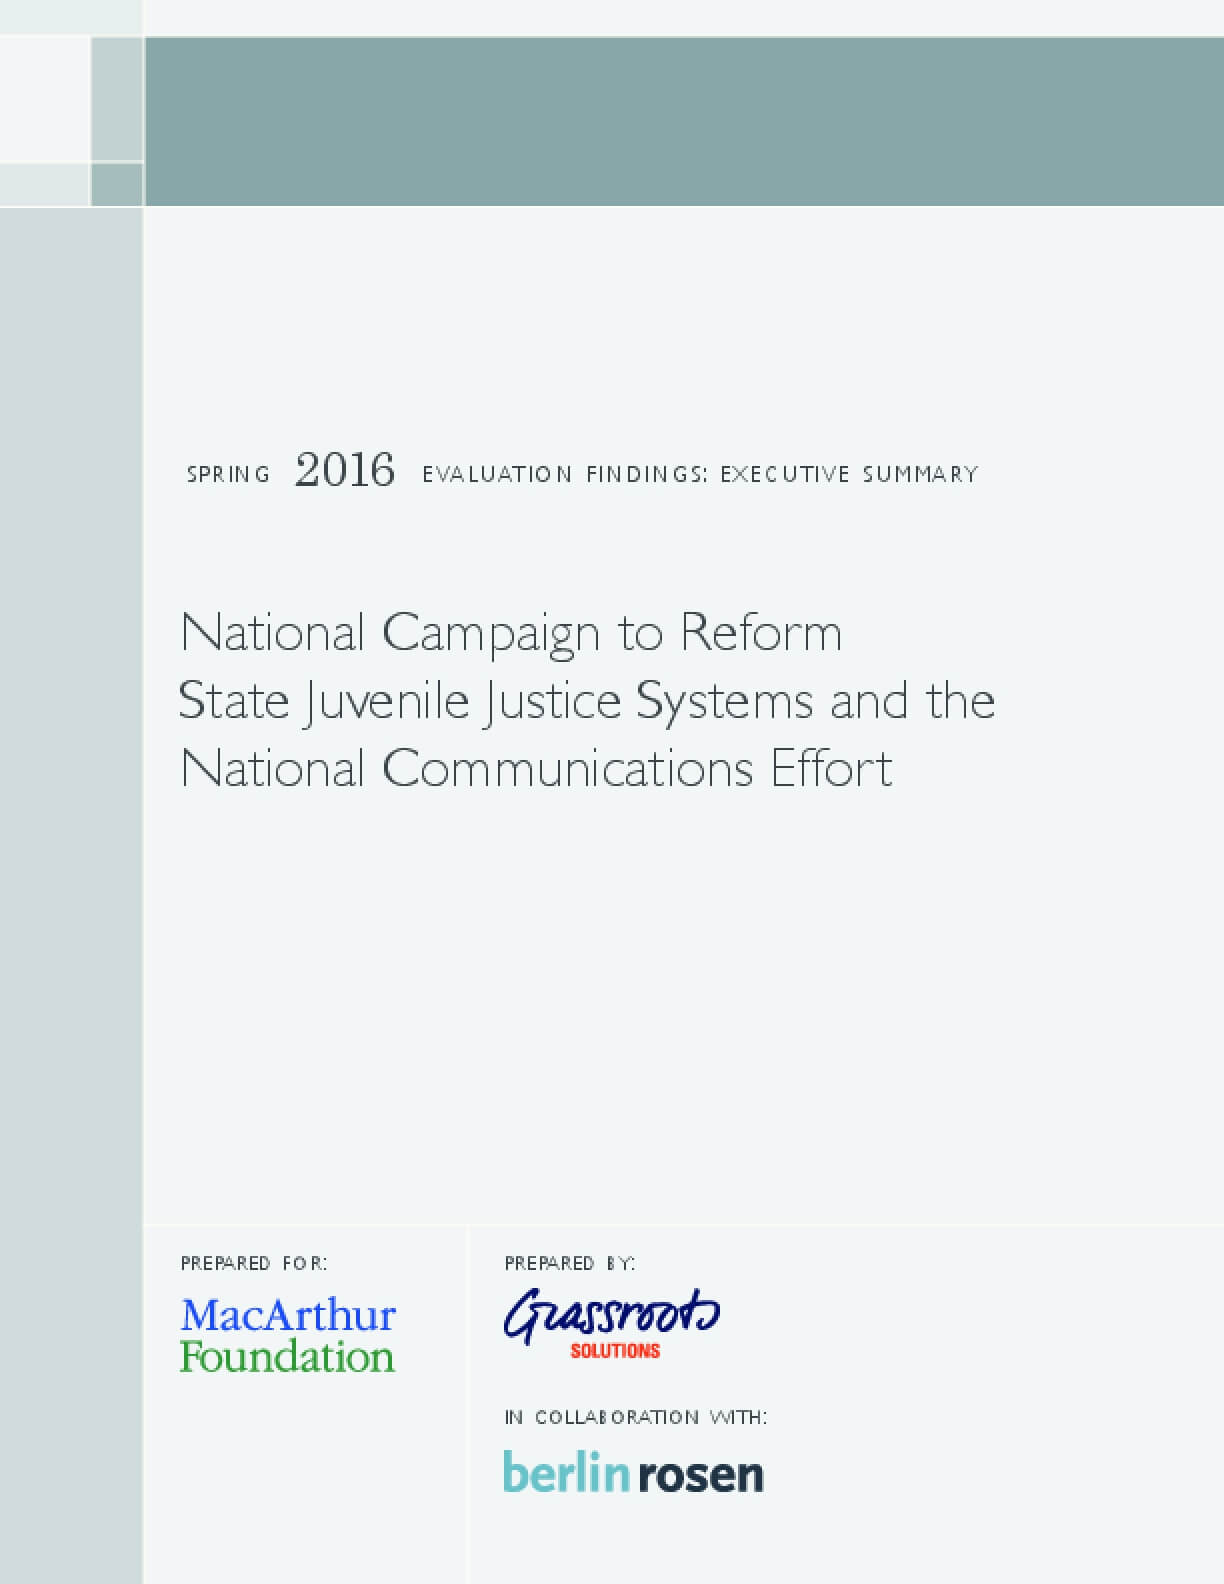 National Campaign to Reform State Juvenile Justice Systems and the National Communications Effort